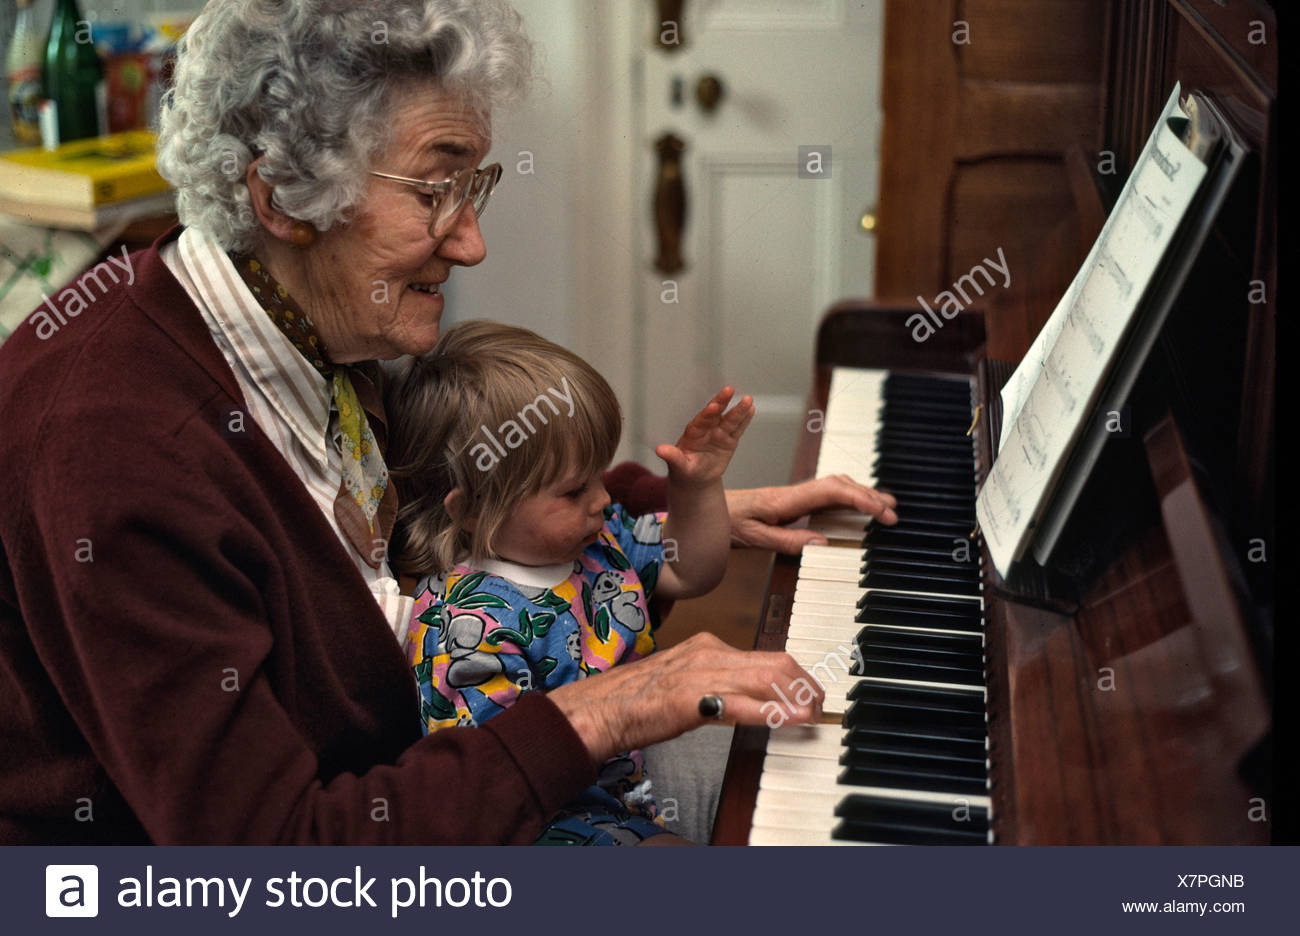 grand mother and 9 month old granddaughter at the piano